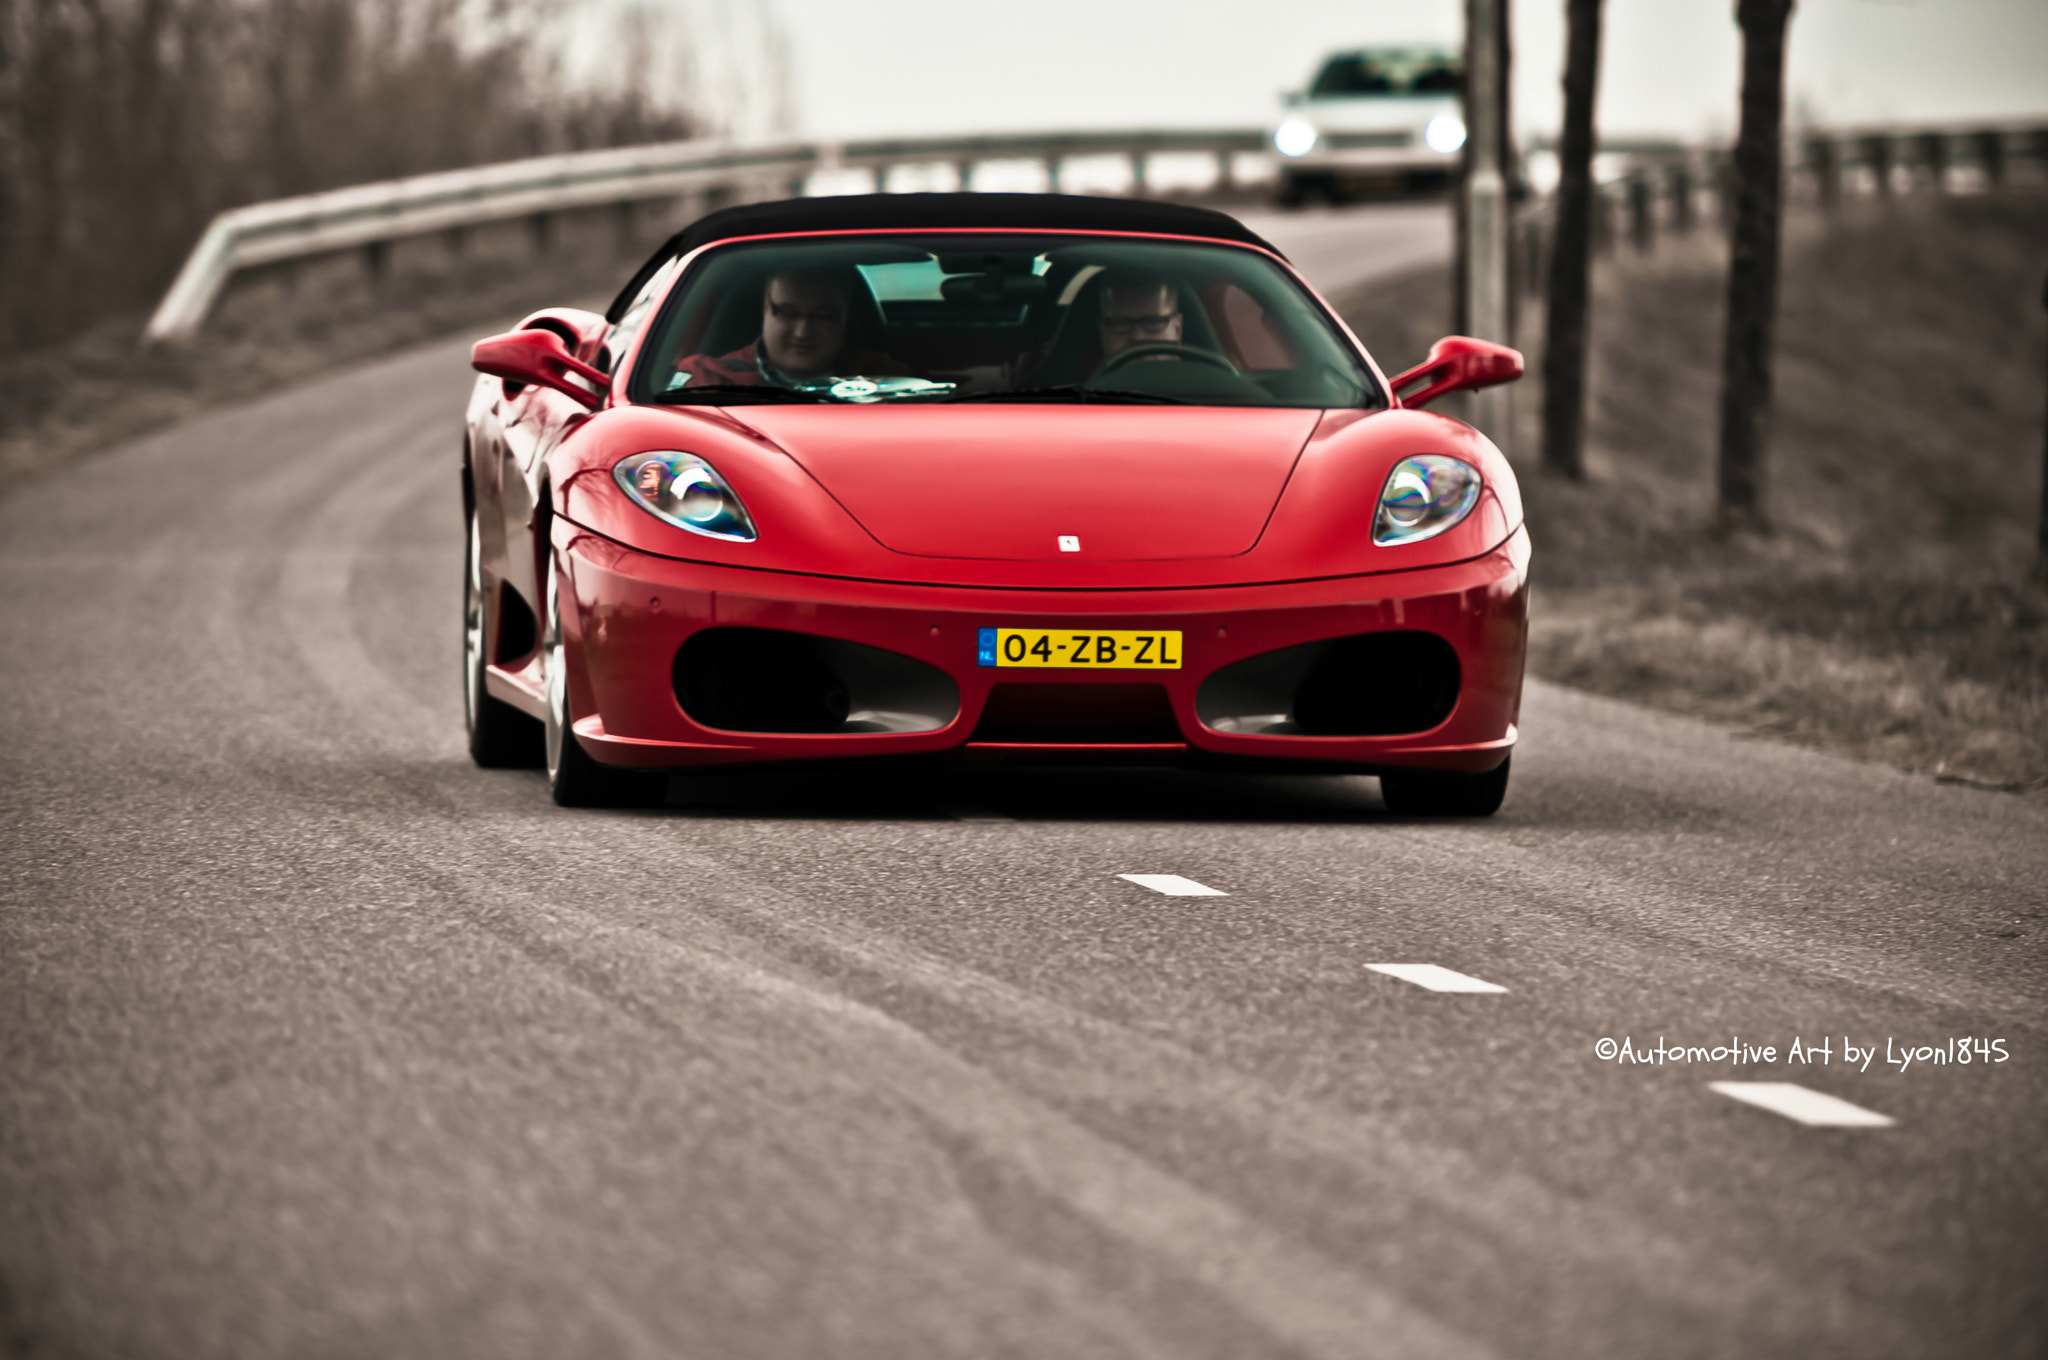 Photograph Ferrari F430 Spider by lyon1845 on 500px